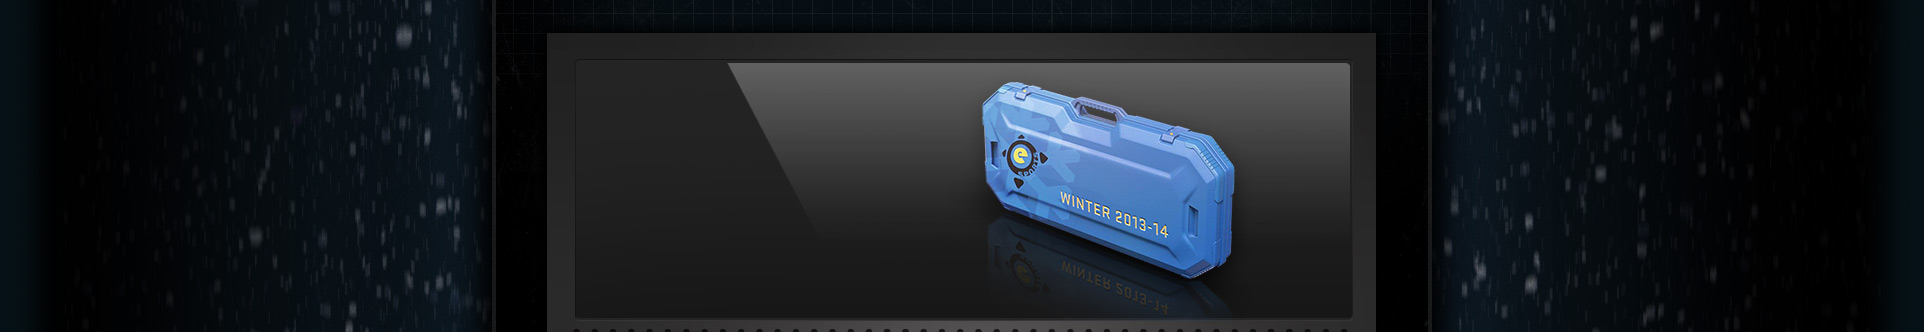 http://media.steampowered.com/apps/csgo/images/winteroffensive/bg_07.jpg